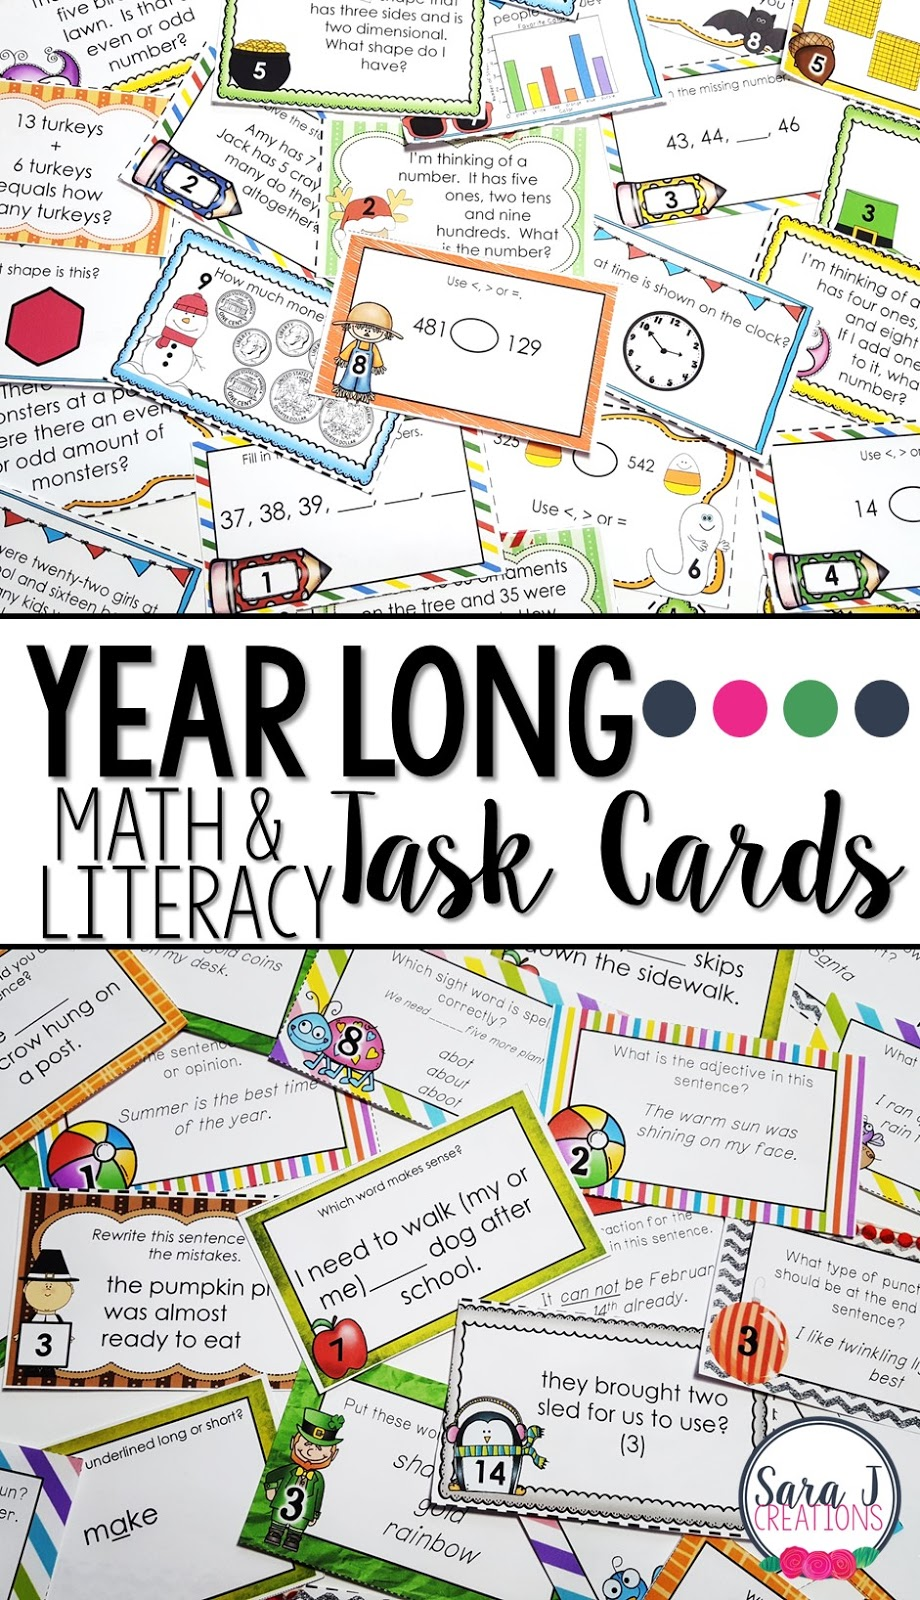 Math and literacy task card bundles for the whole year includes holidays and seasons celebrated during the school year.